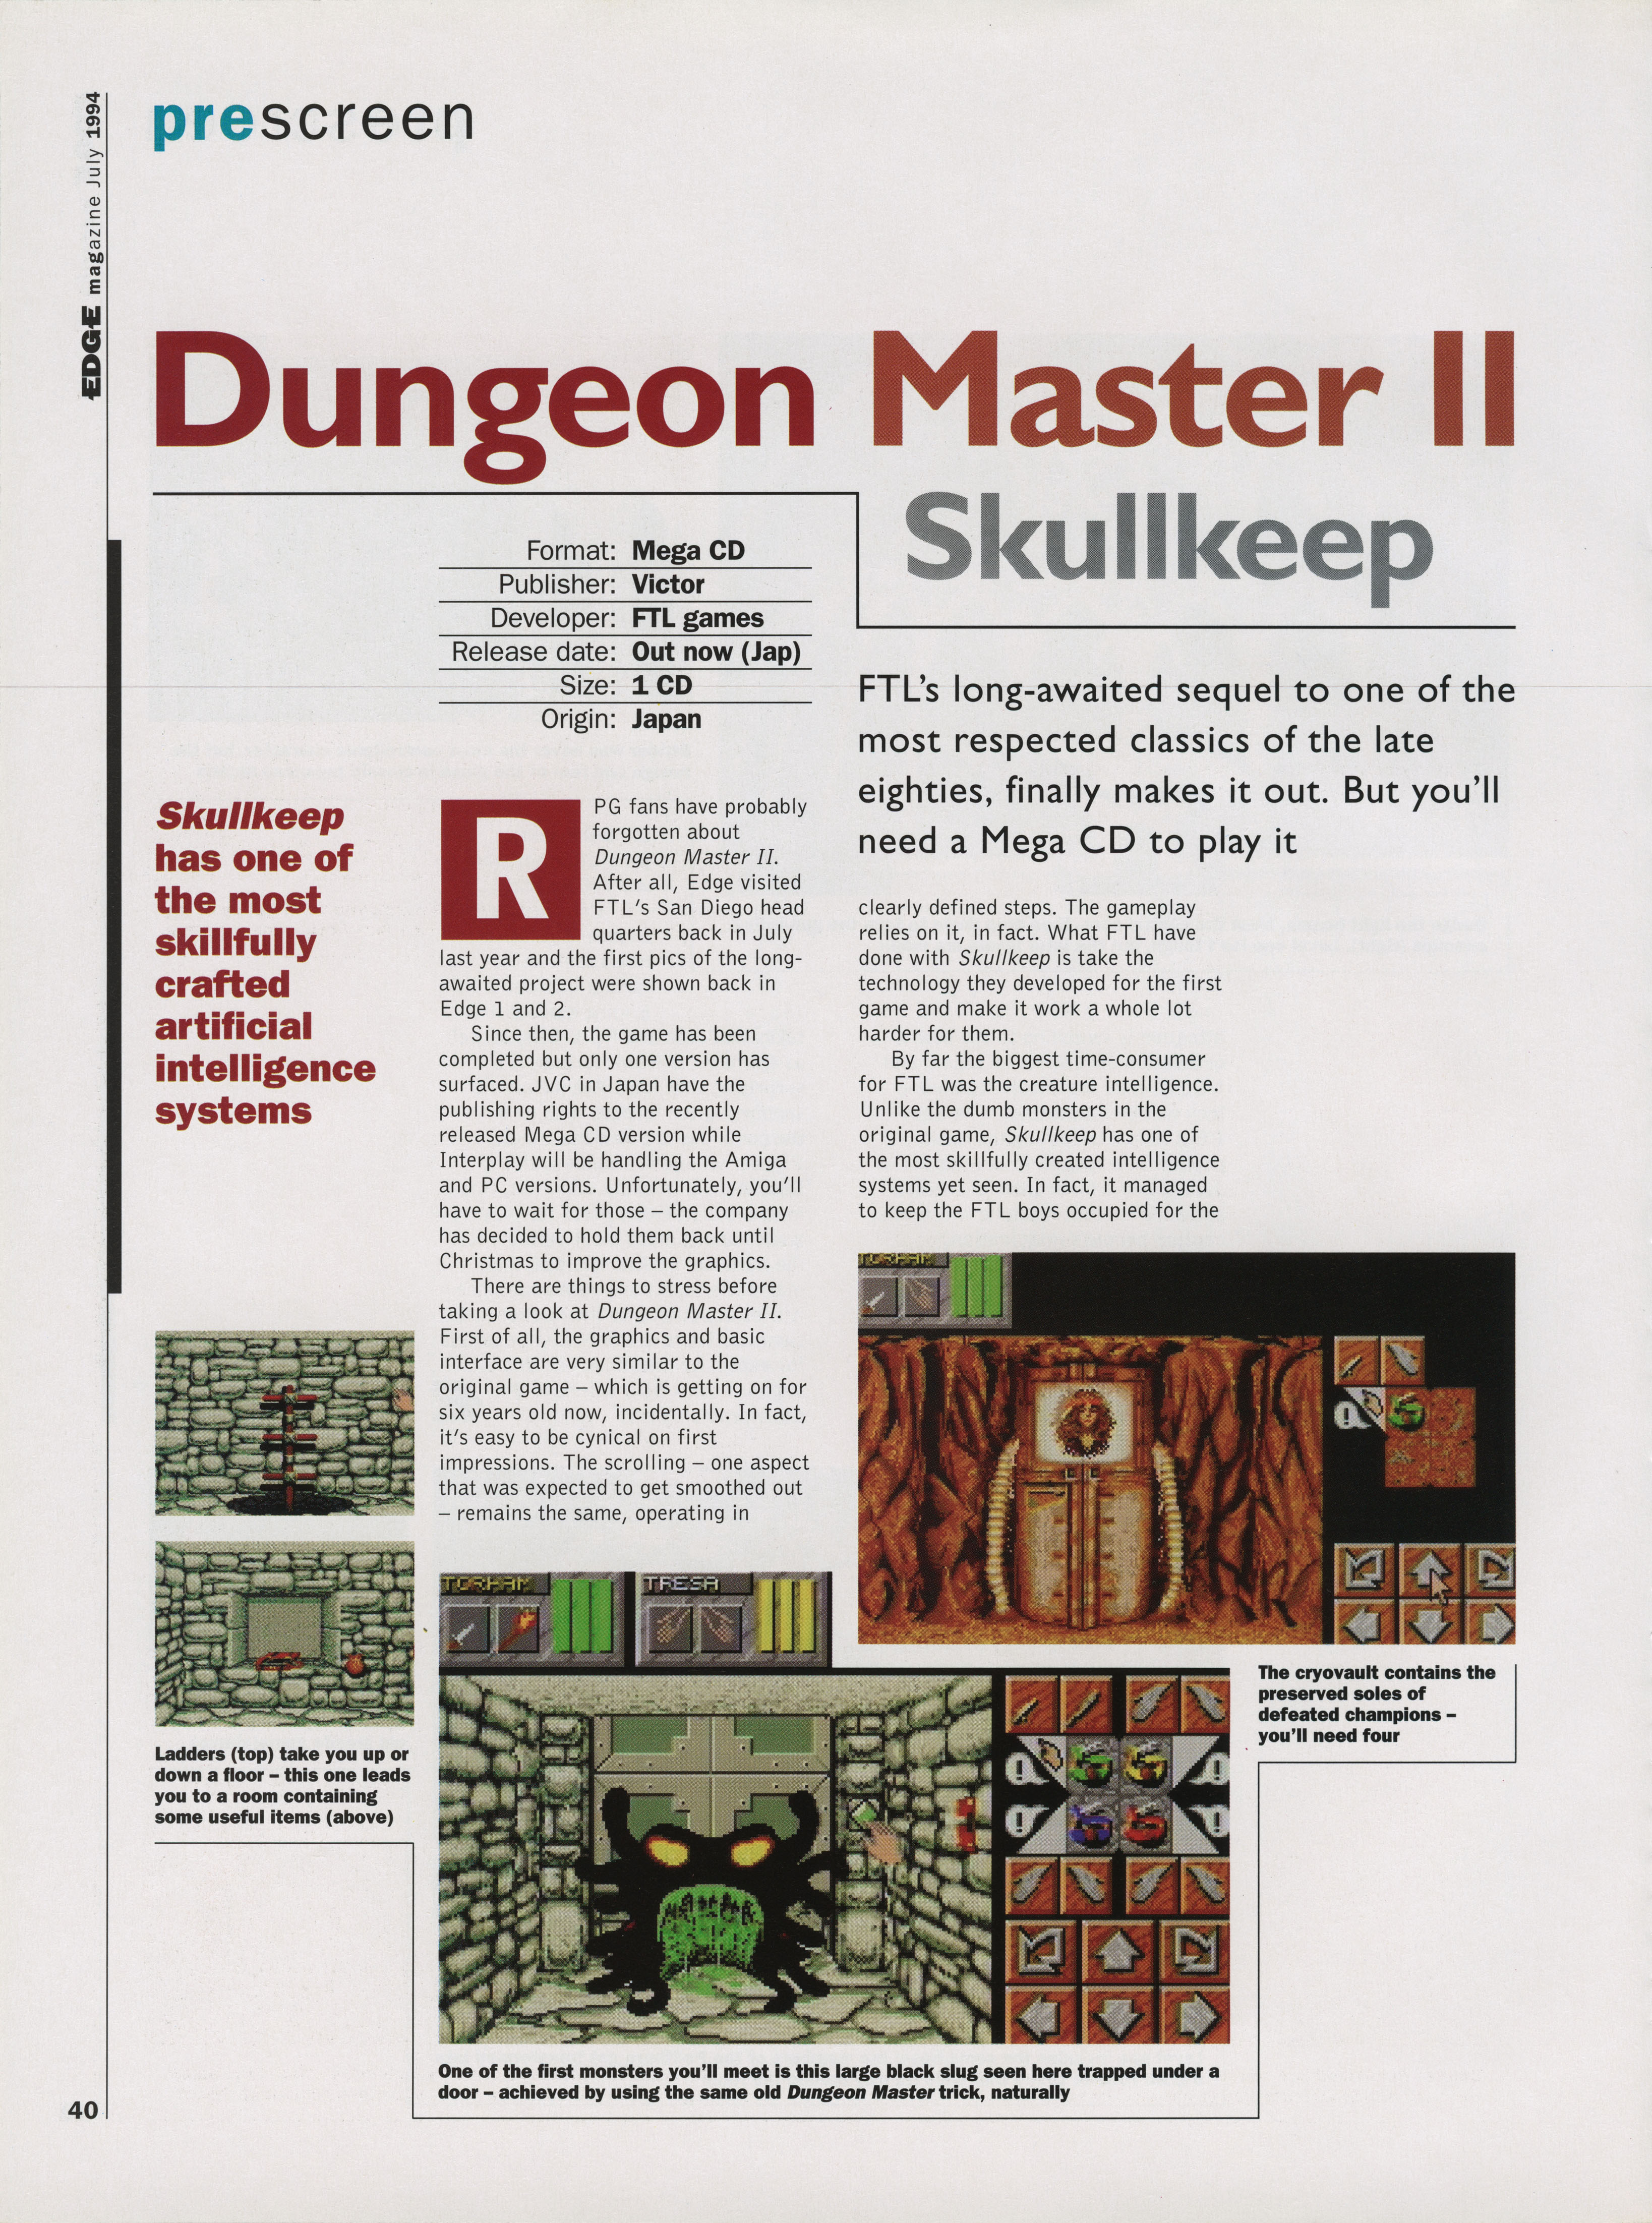 Dungeon Master II for Mega CD Preview published in British magazine 'Edge', Issue #10 July 1994, Page 40